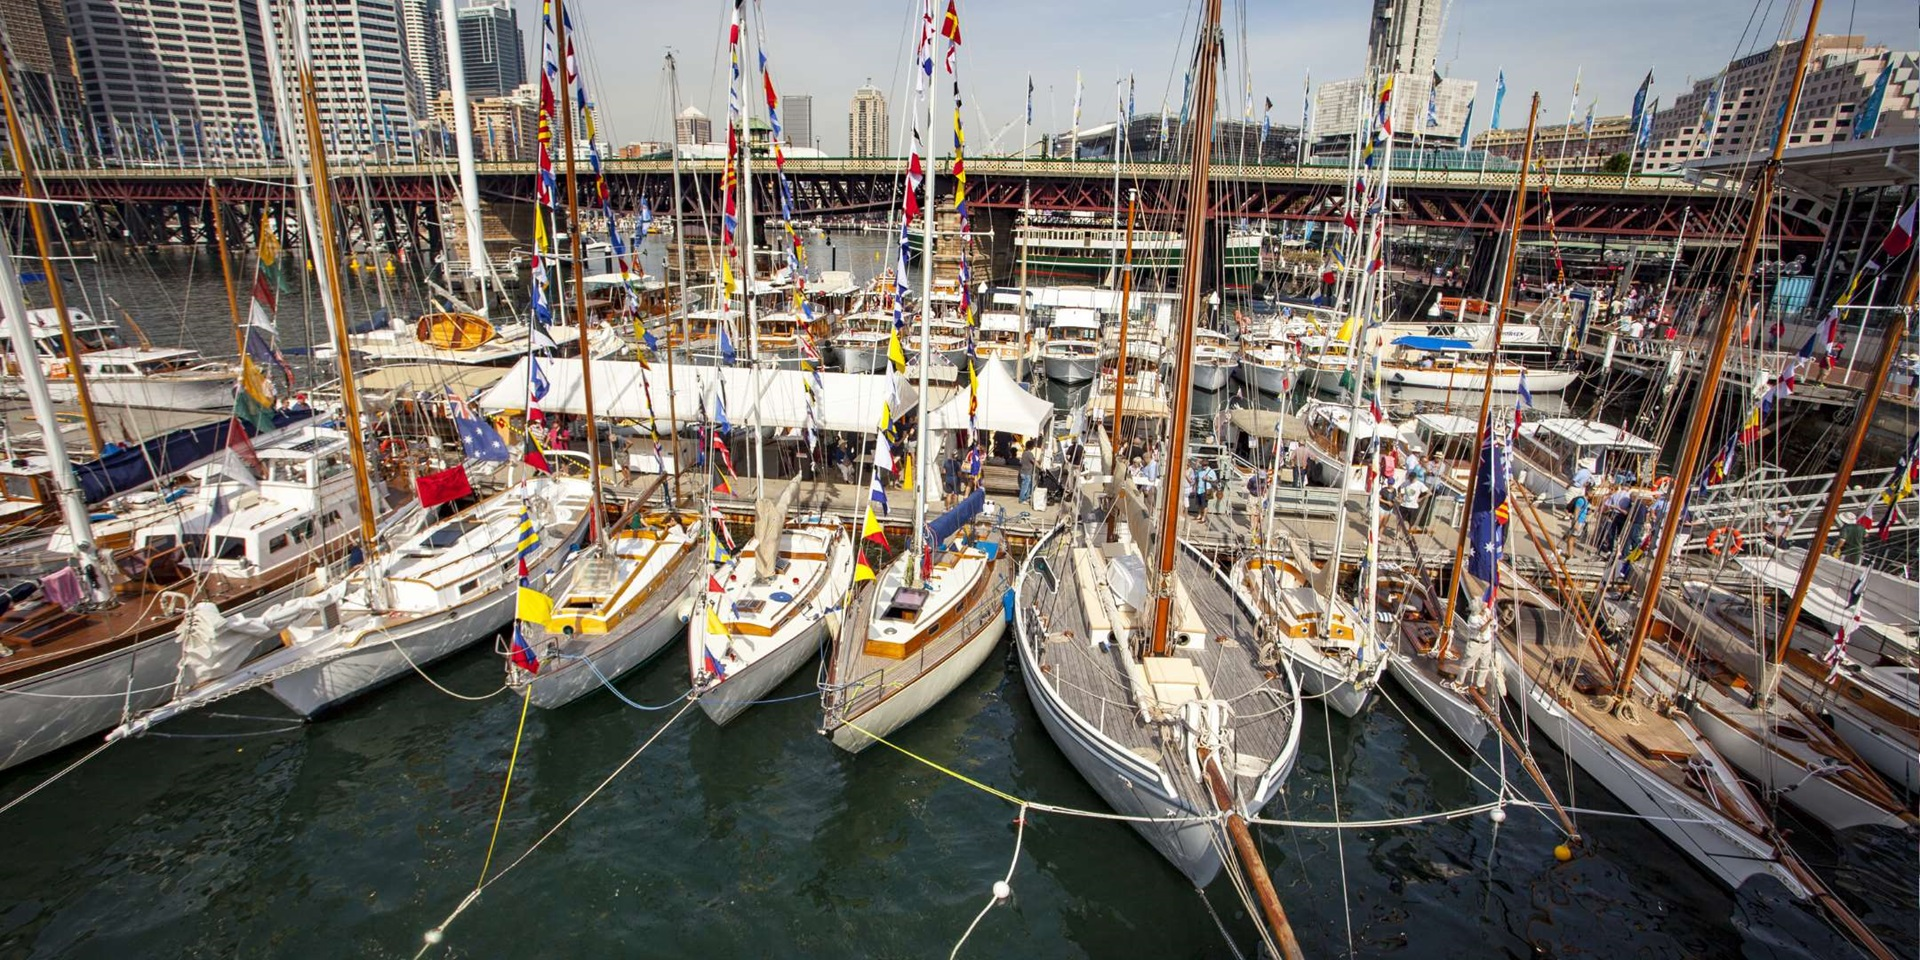 Classic Wooden Boat Festival 2016. Masted wooden boats pictured moored together with the Pyrmont Bridge in the background.